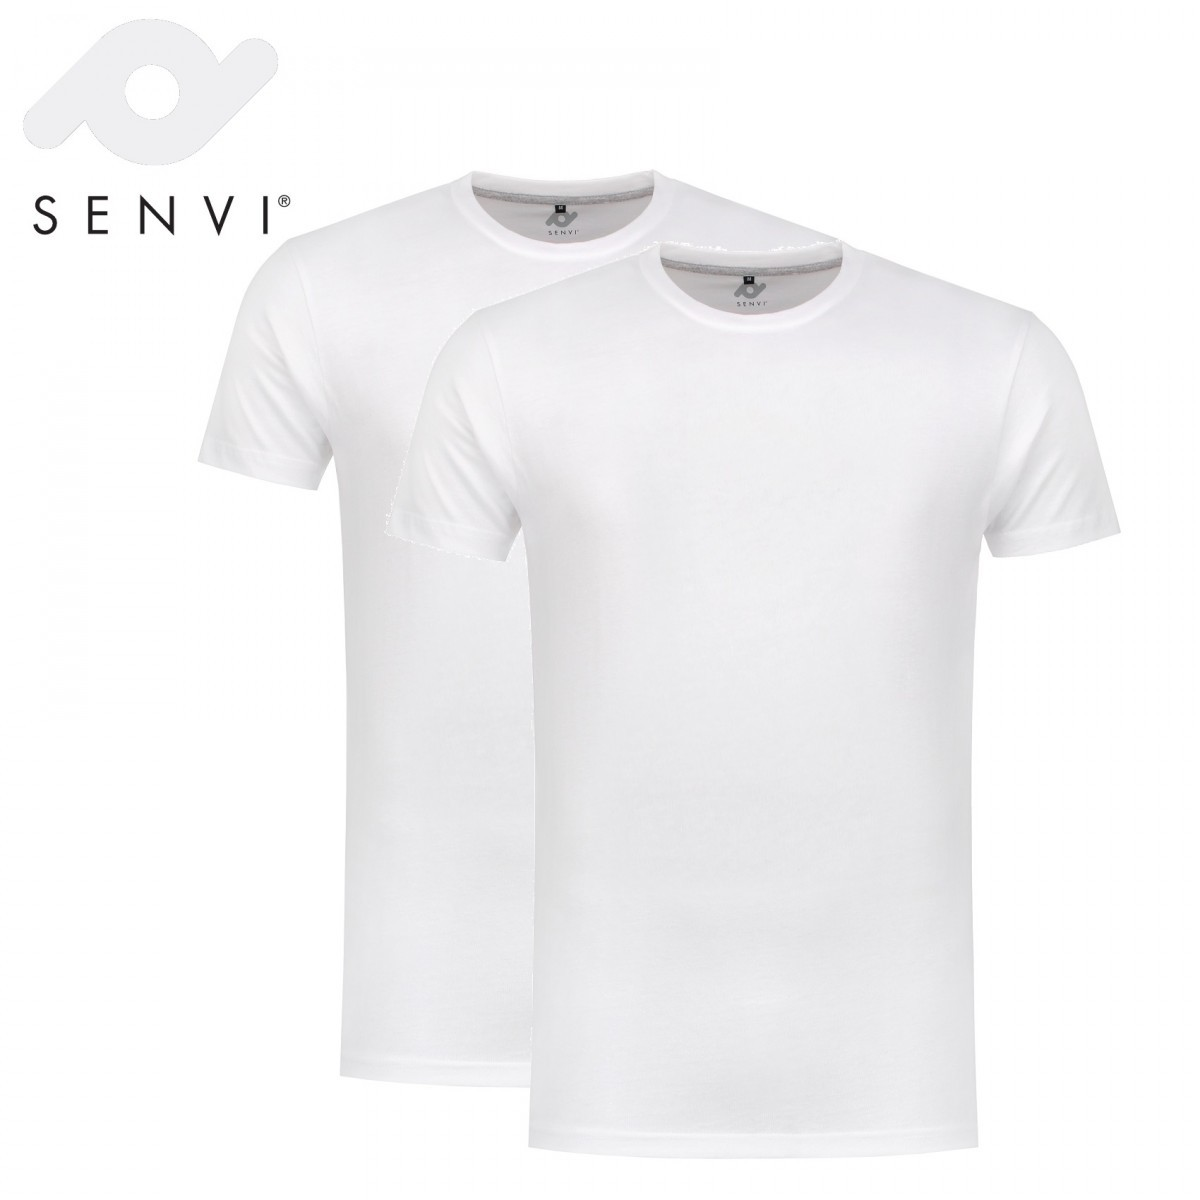 Senvi Basic T-Shirt Wit 2 Pack Maat XXL